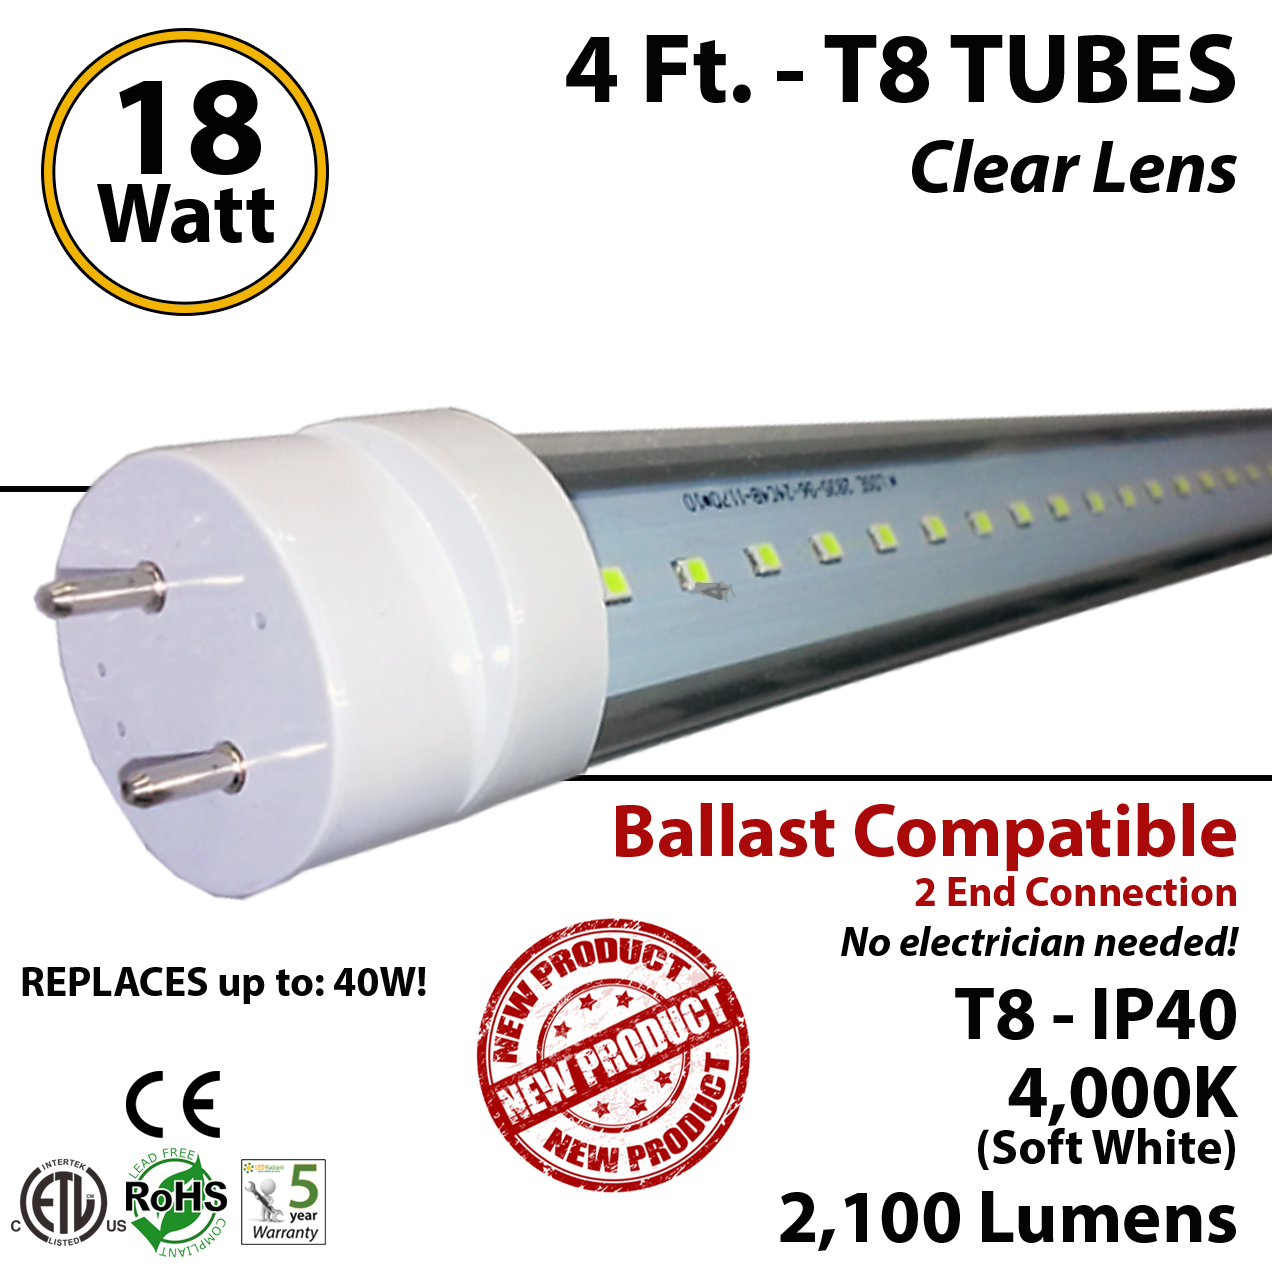 4ft led t8 tube lightbulb t4cbac182104dl_1 18w 4ft led t8 tube light fluorescent replacement 4000k ledradiant  at readyjetset.co